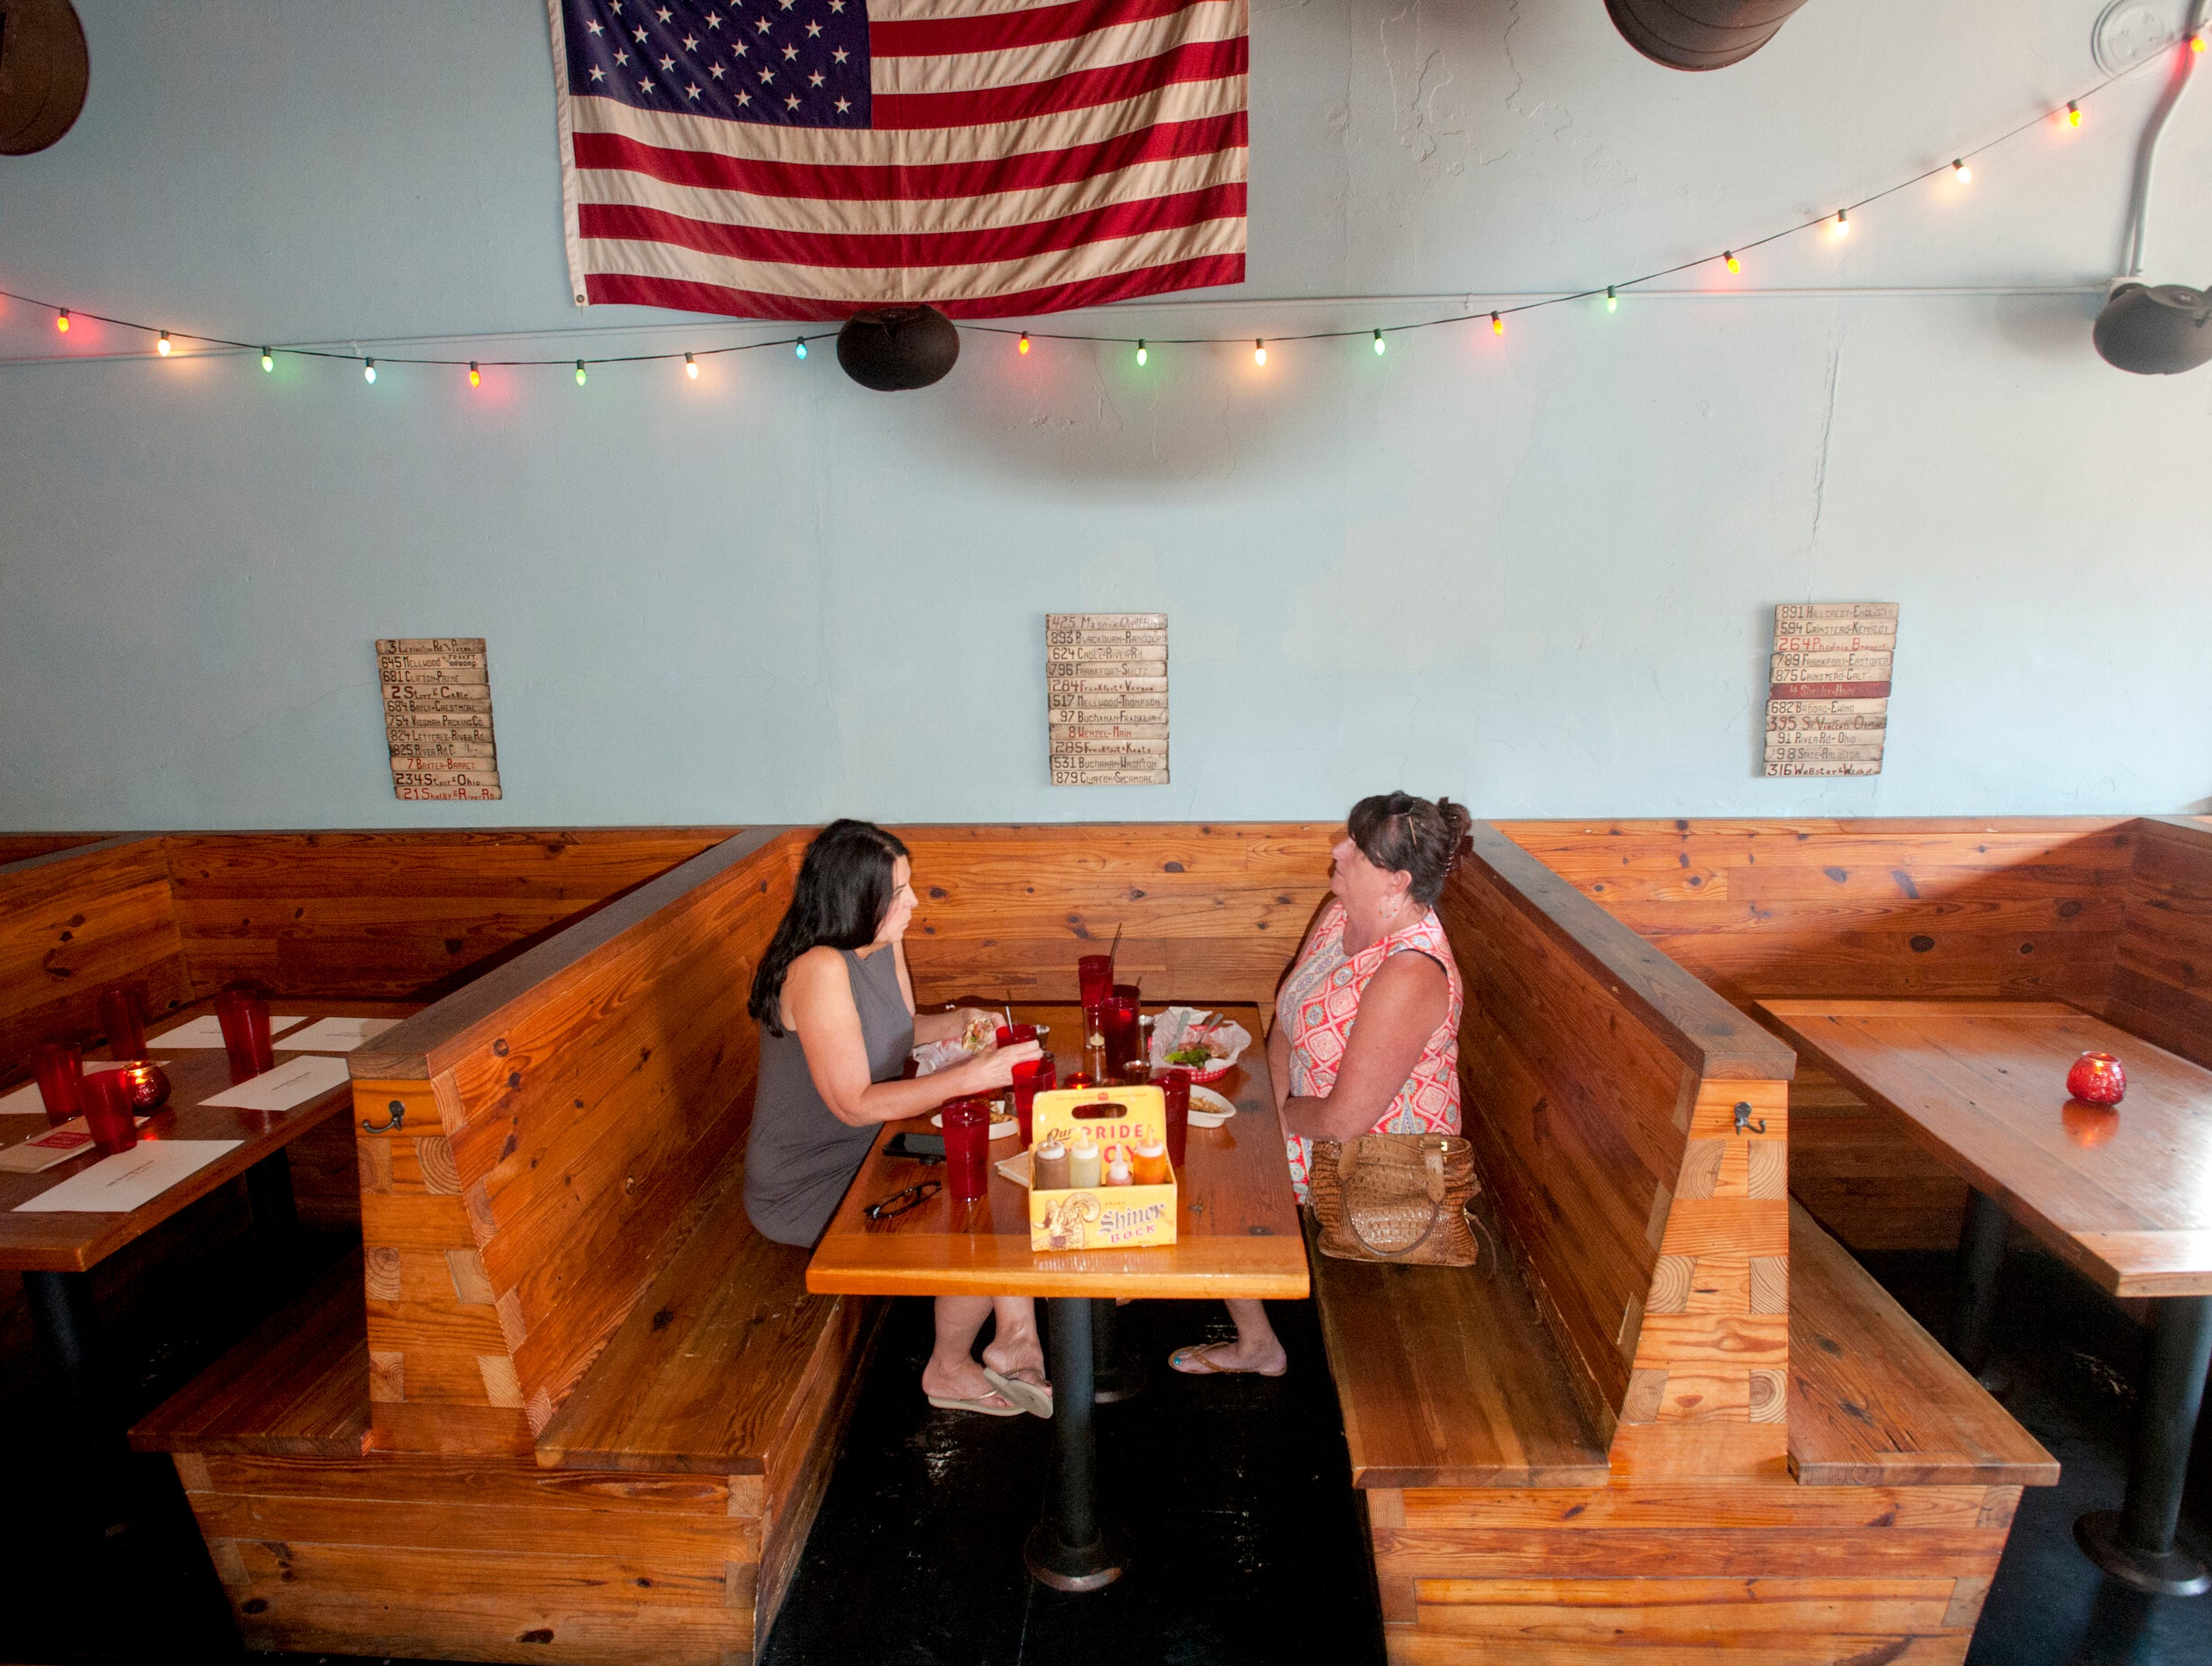 Regular patrons Kim Sickels of Prespect and Terri Trussell of New Albany (In.) eat in the dining room of the Silver Dollar Bar and Restaurant. 